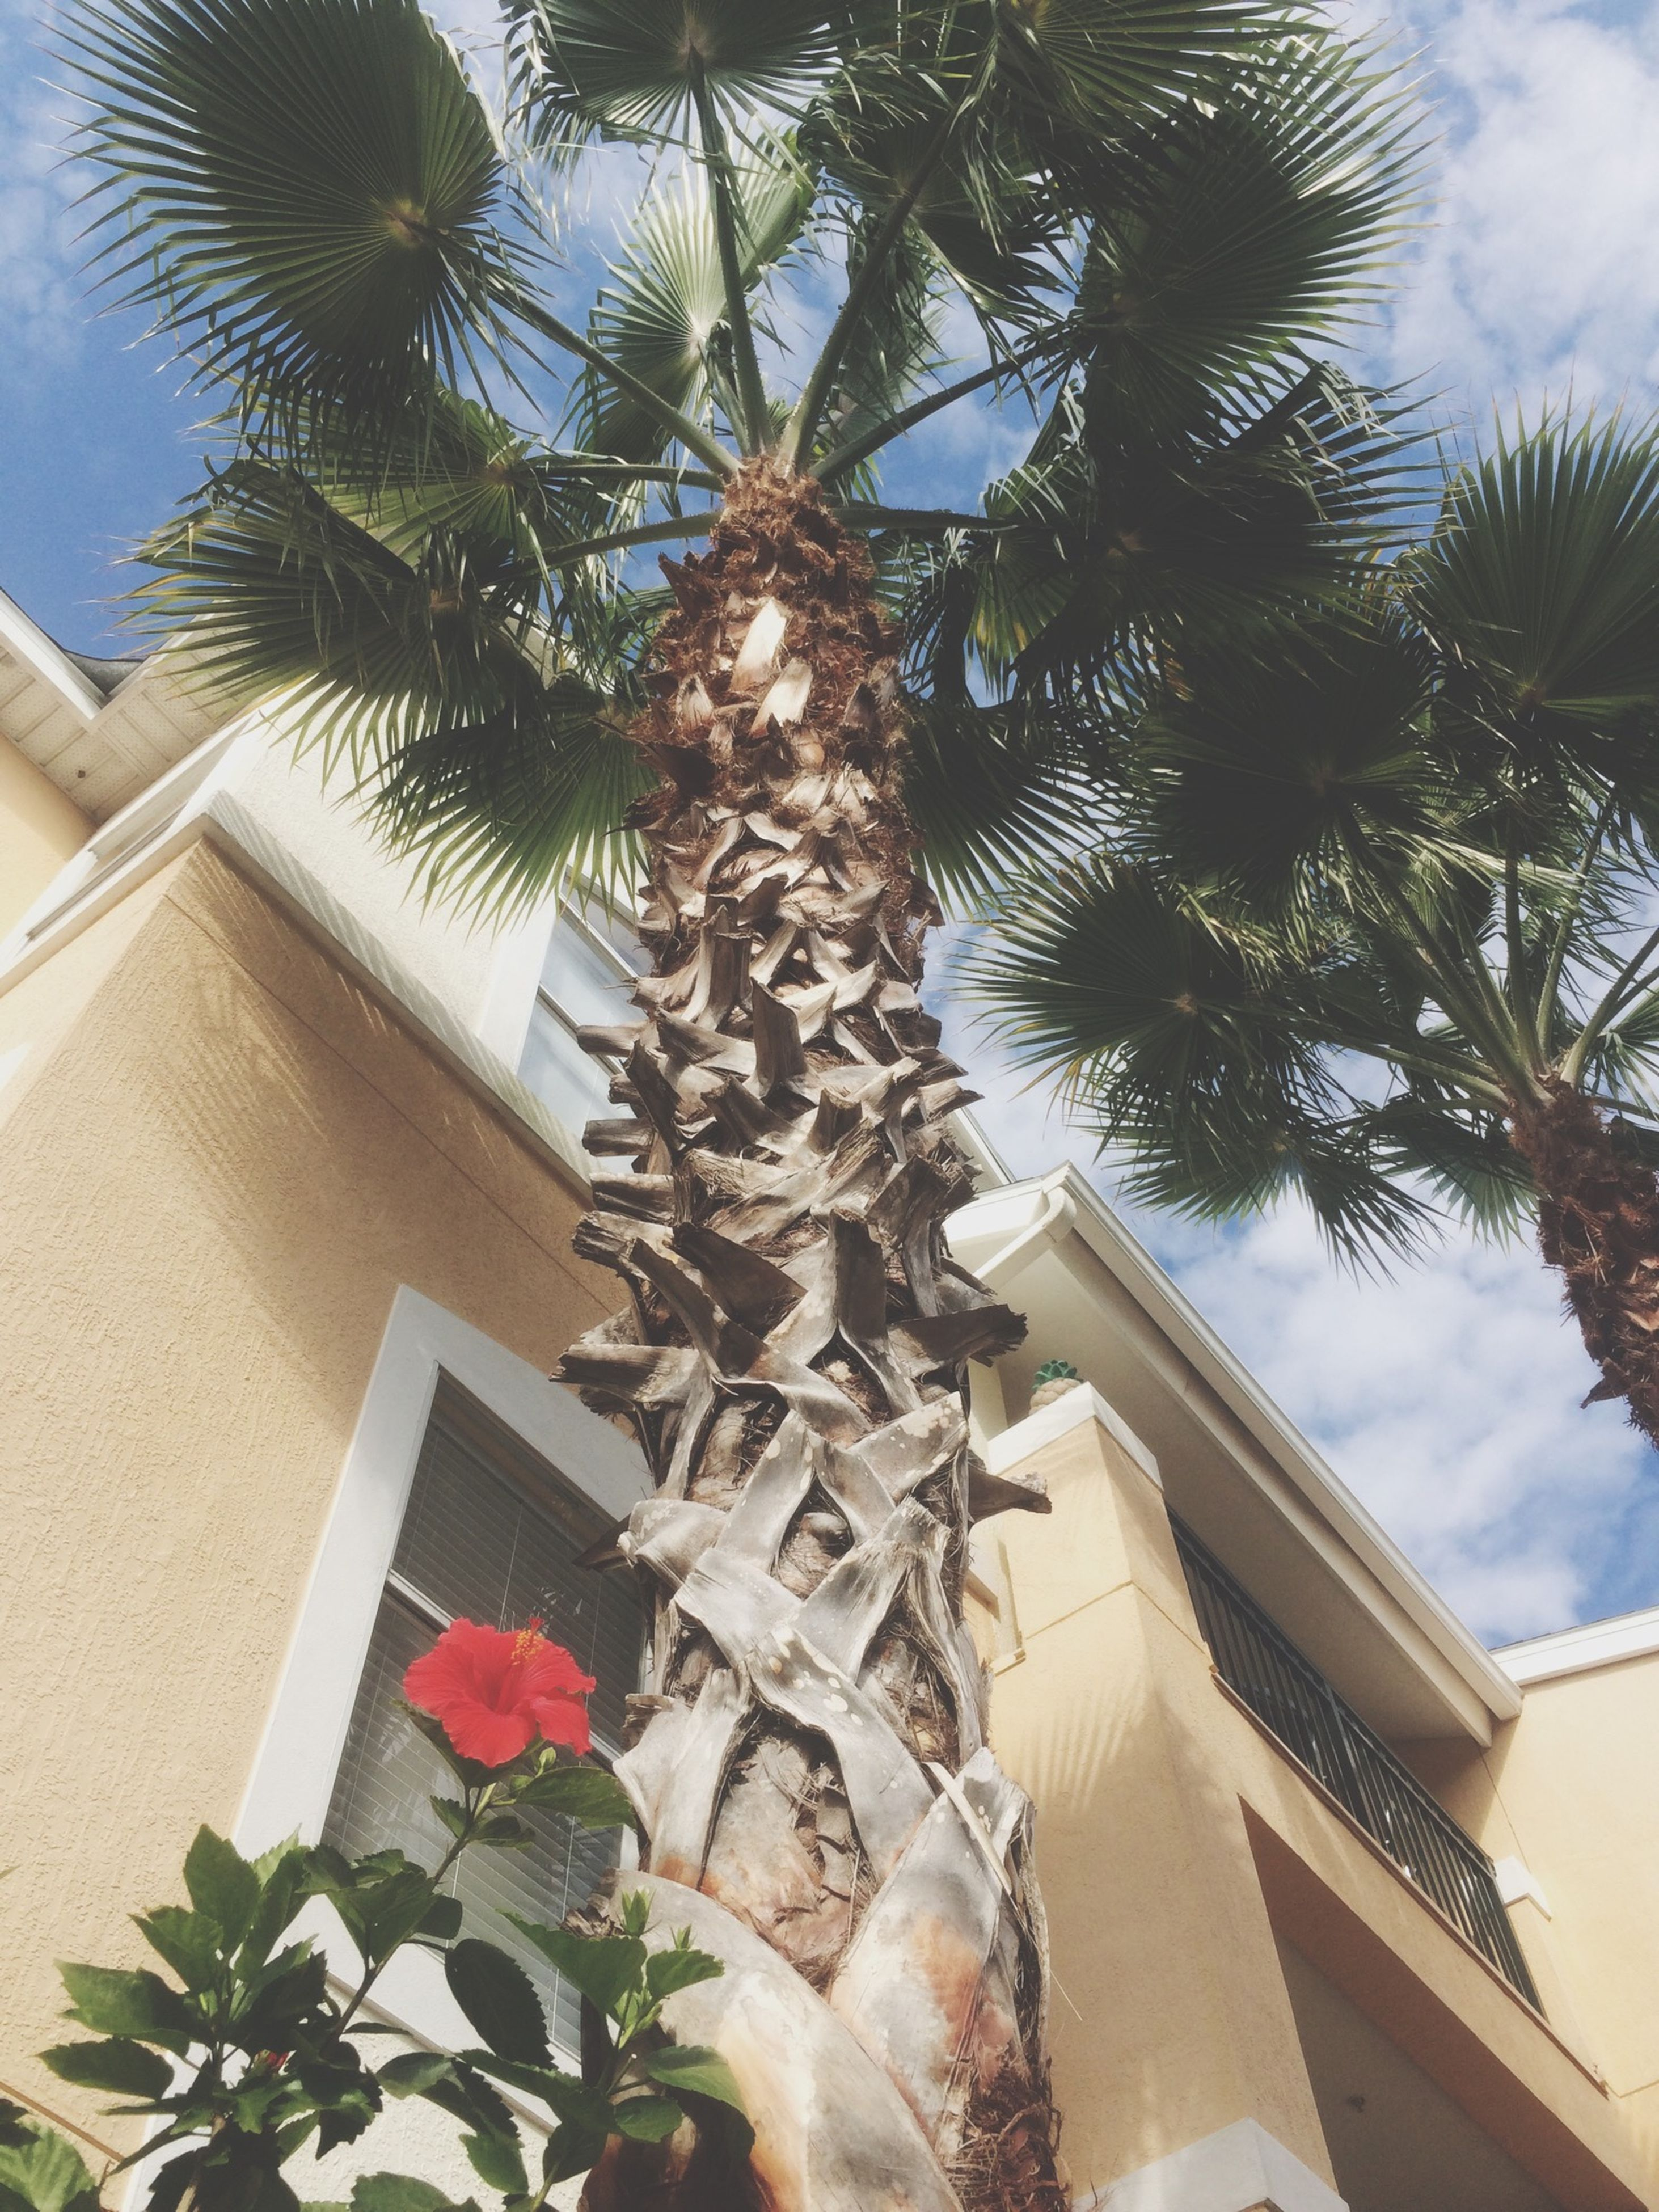 architecture, building exterior, built structure, low angle view, tree, sky, residential building, residential structure, house, growth, window, building, day, palm tree, outdoors, sunlight, no people, roof, branch, city